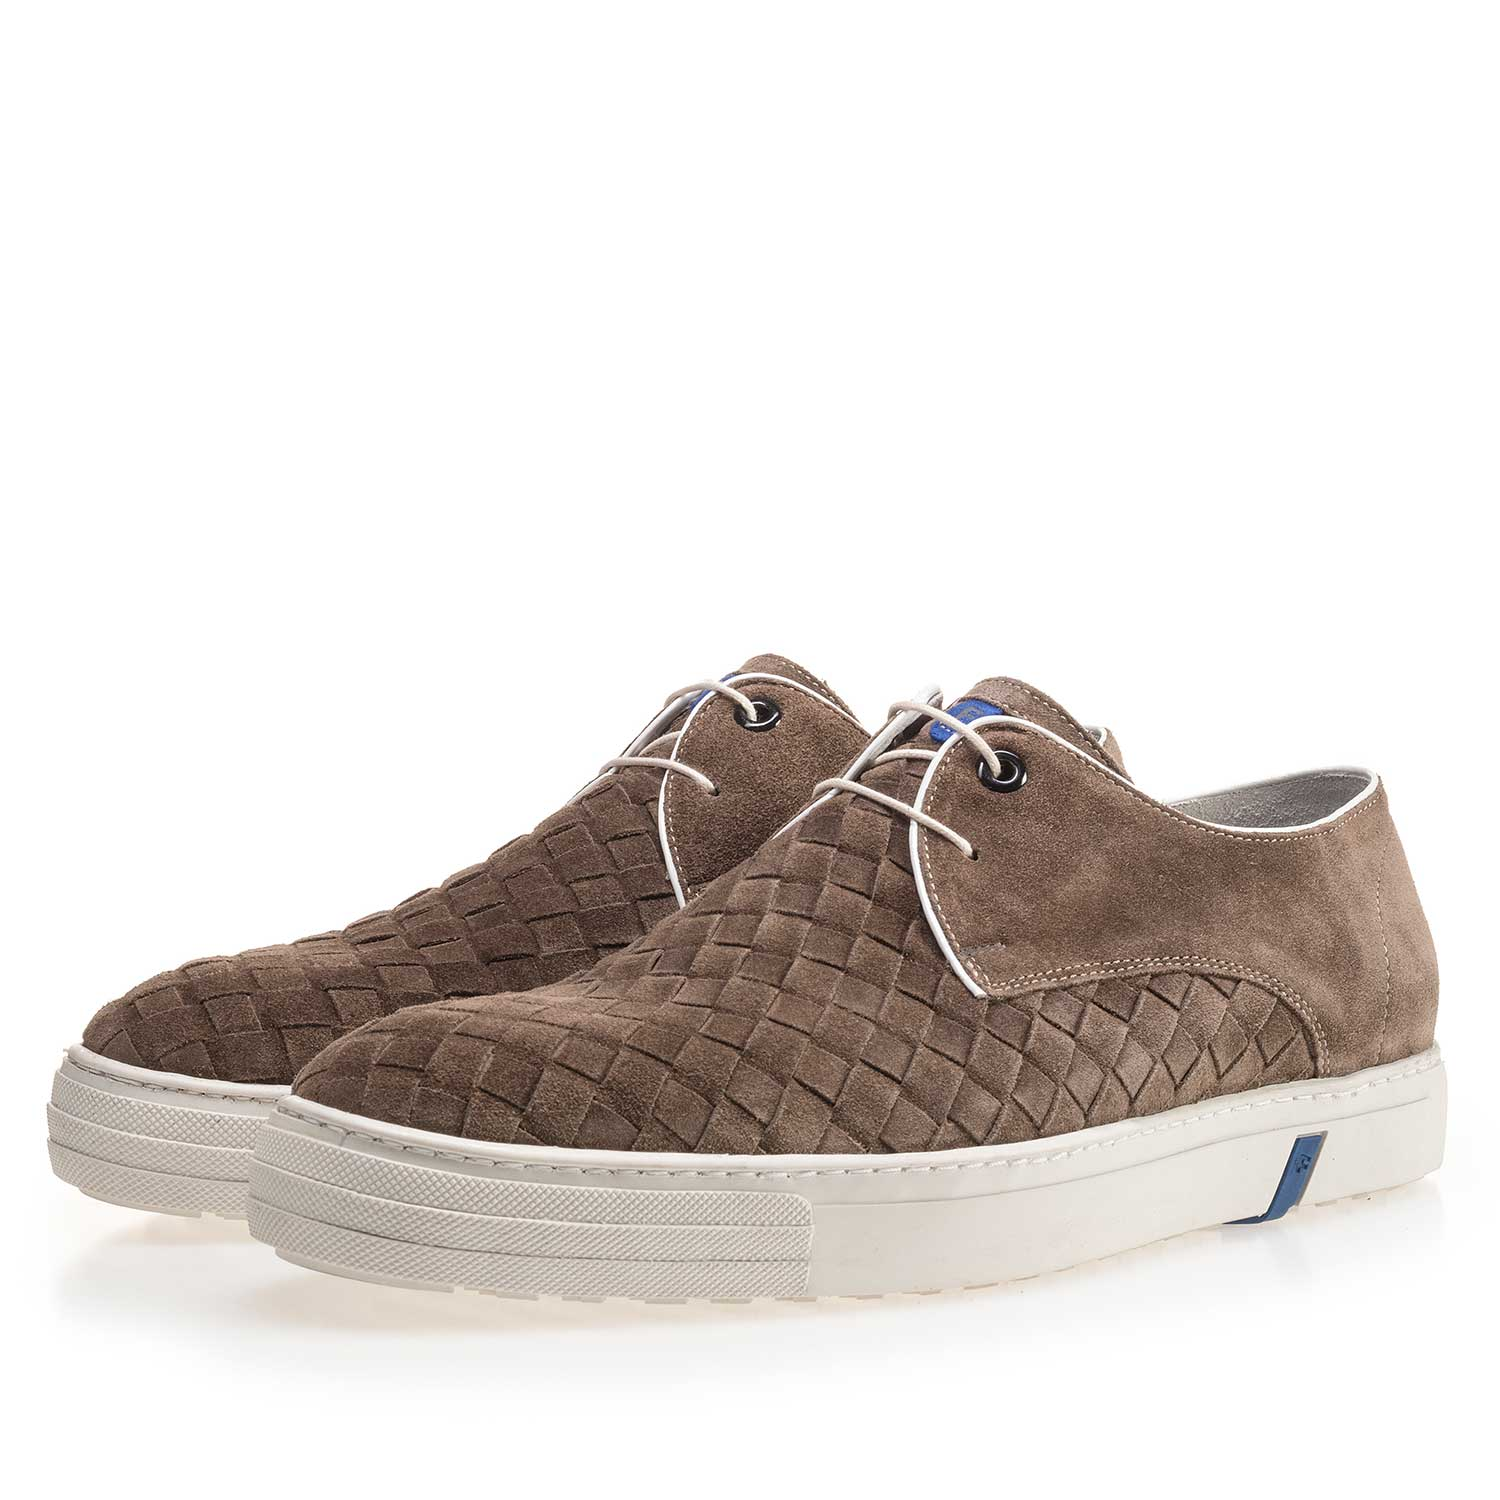 14451/05 - Taupe-coloured lace shoe made of braided leather